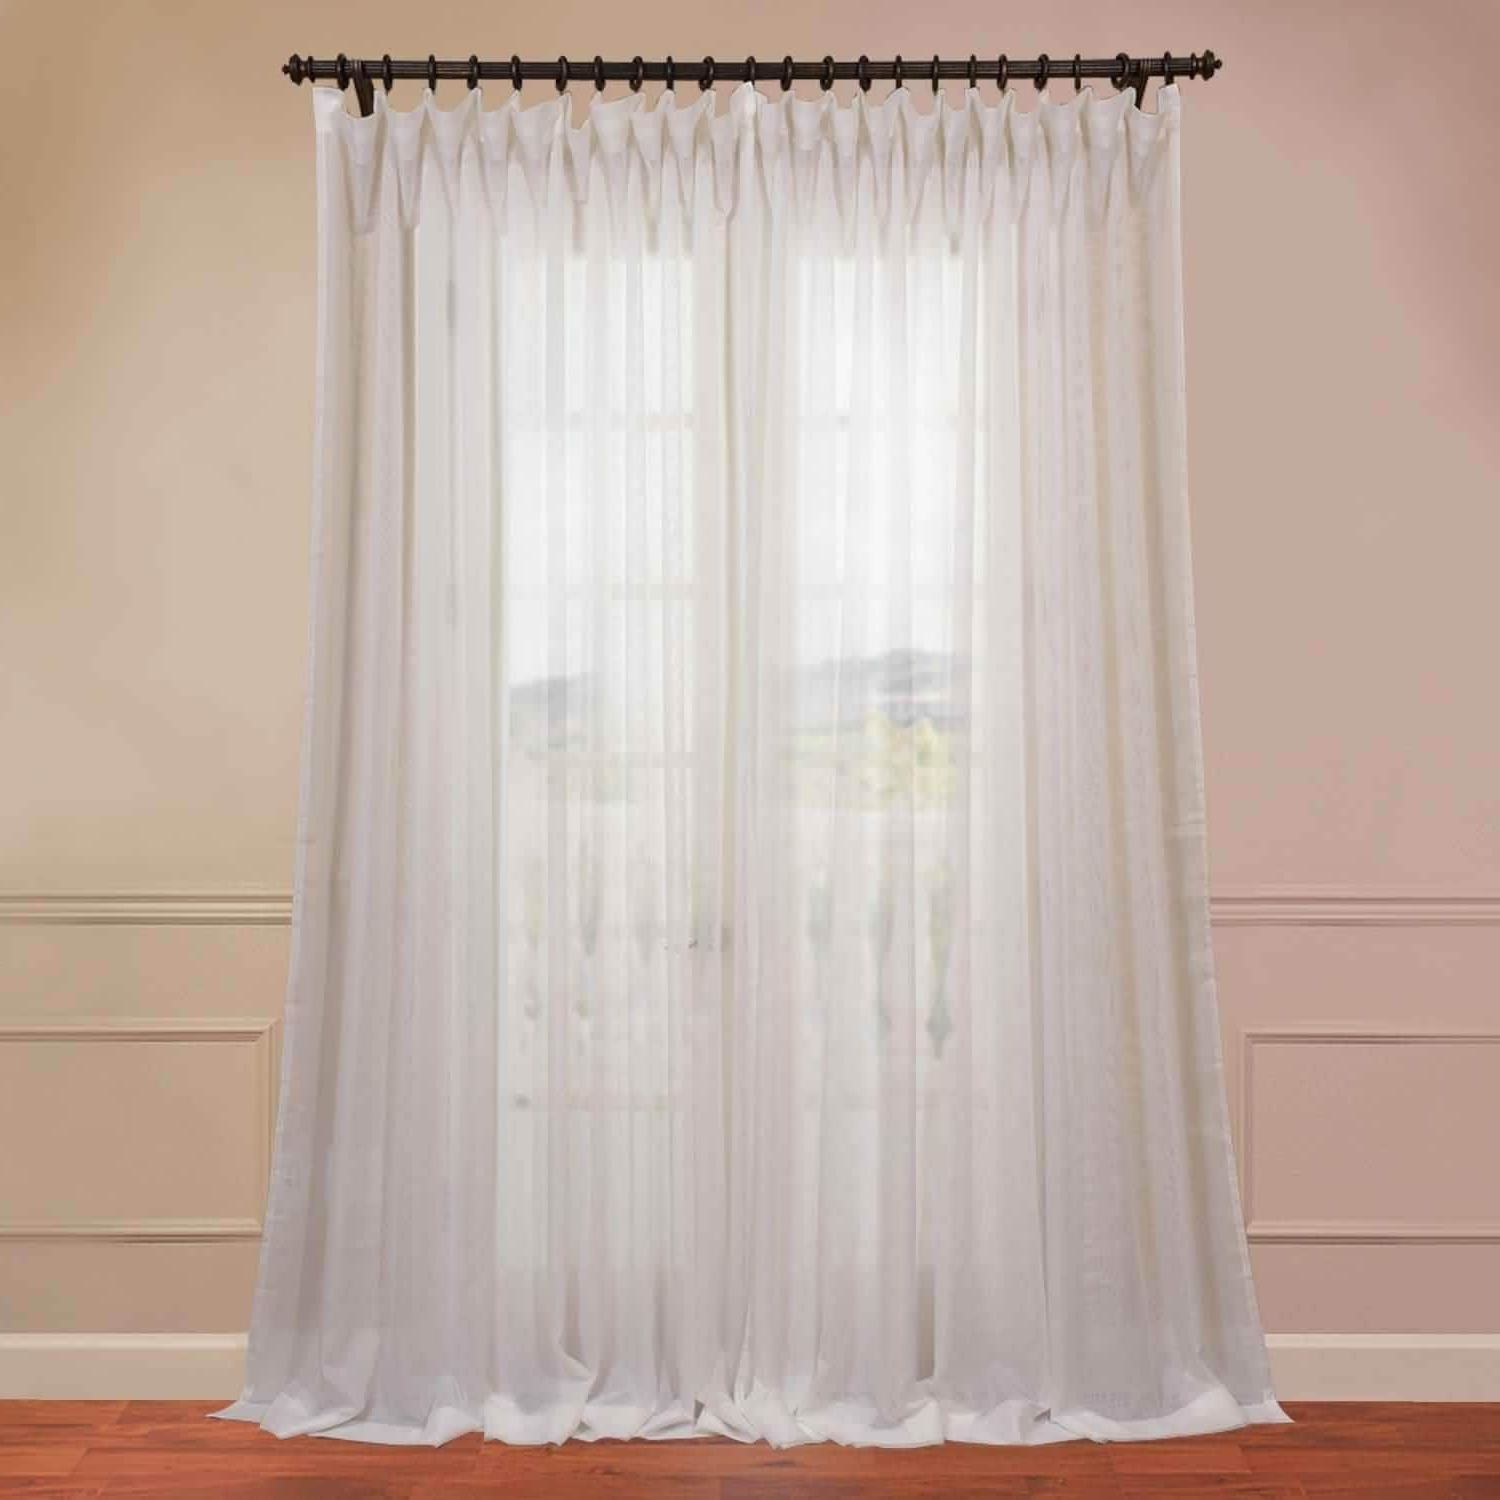 Preferred Exclusive Fabrics Signature Off White Extra Wide Double Regarding Signature Extrawide Double Layer Sheer Curtain Panels (View 12 of 20)